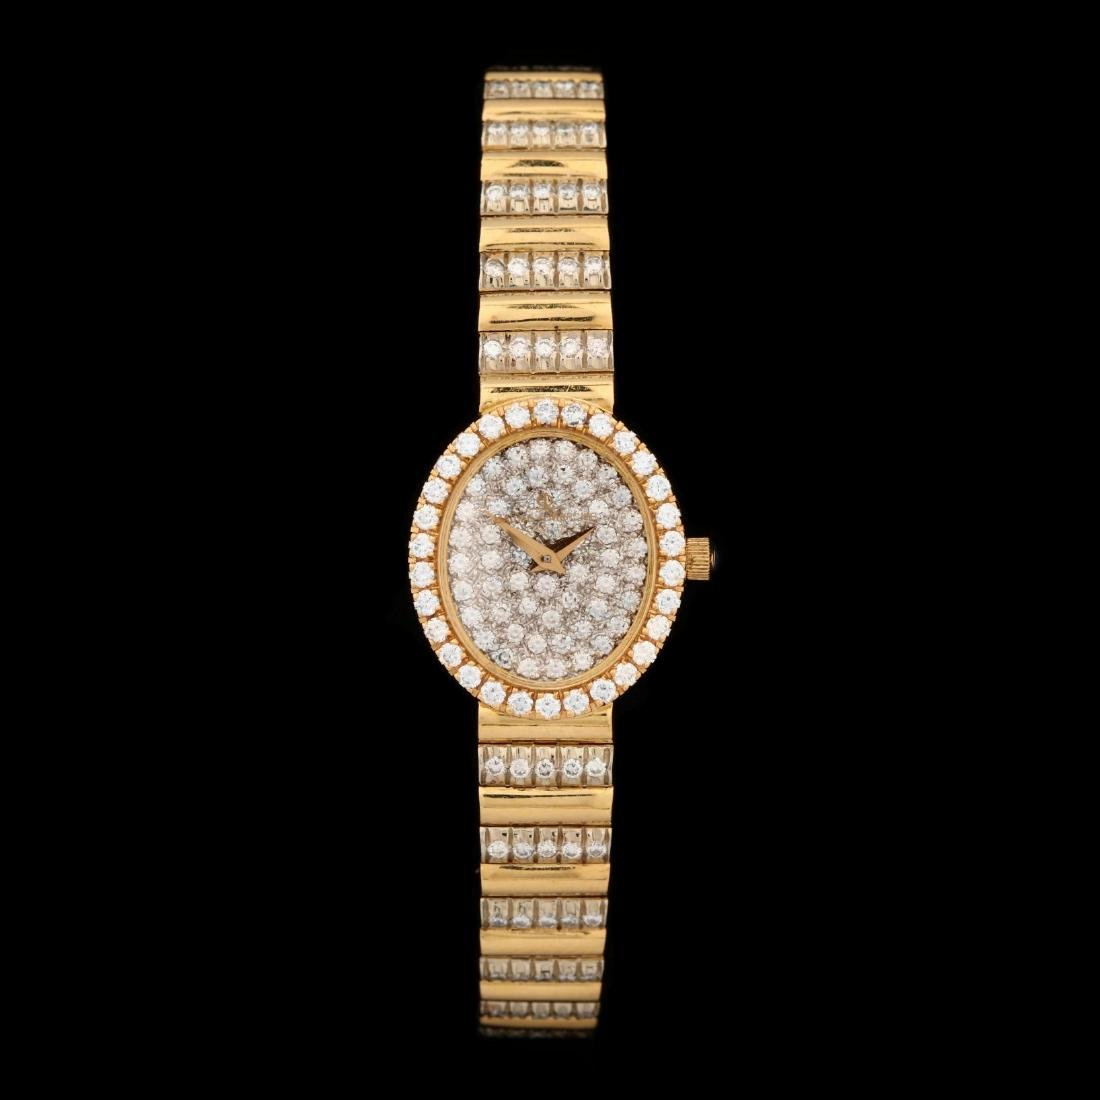 Lady's 18KT Gold and Diamond Watch, Baume & Mercier